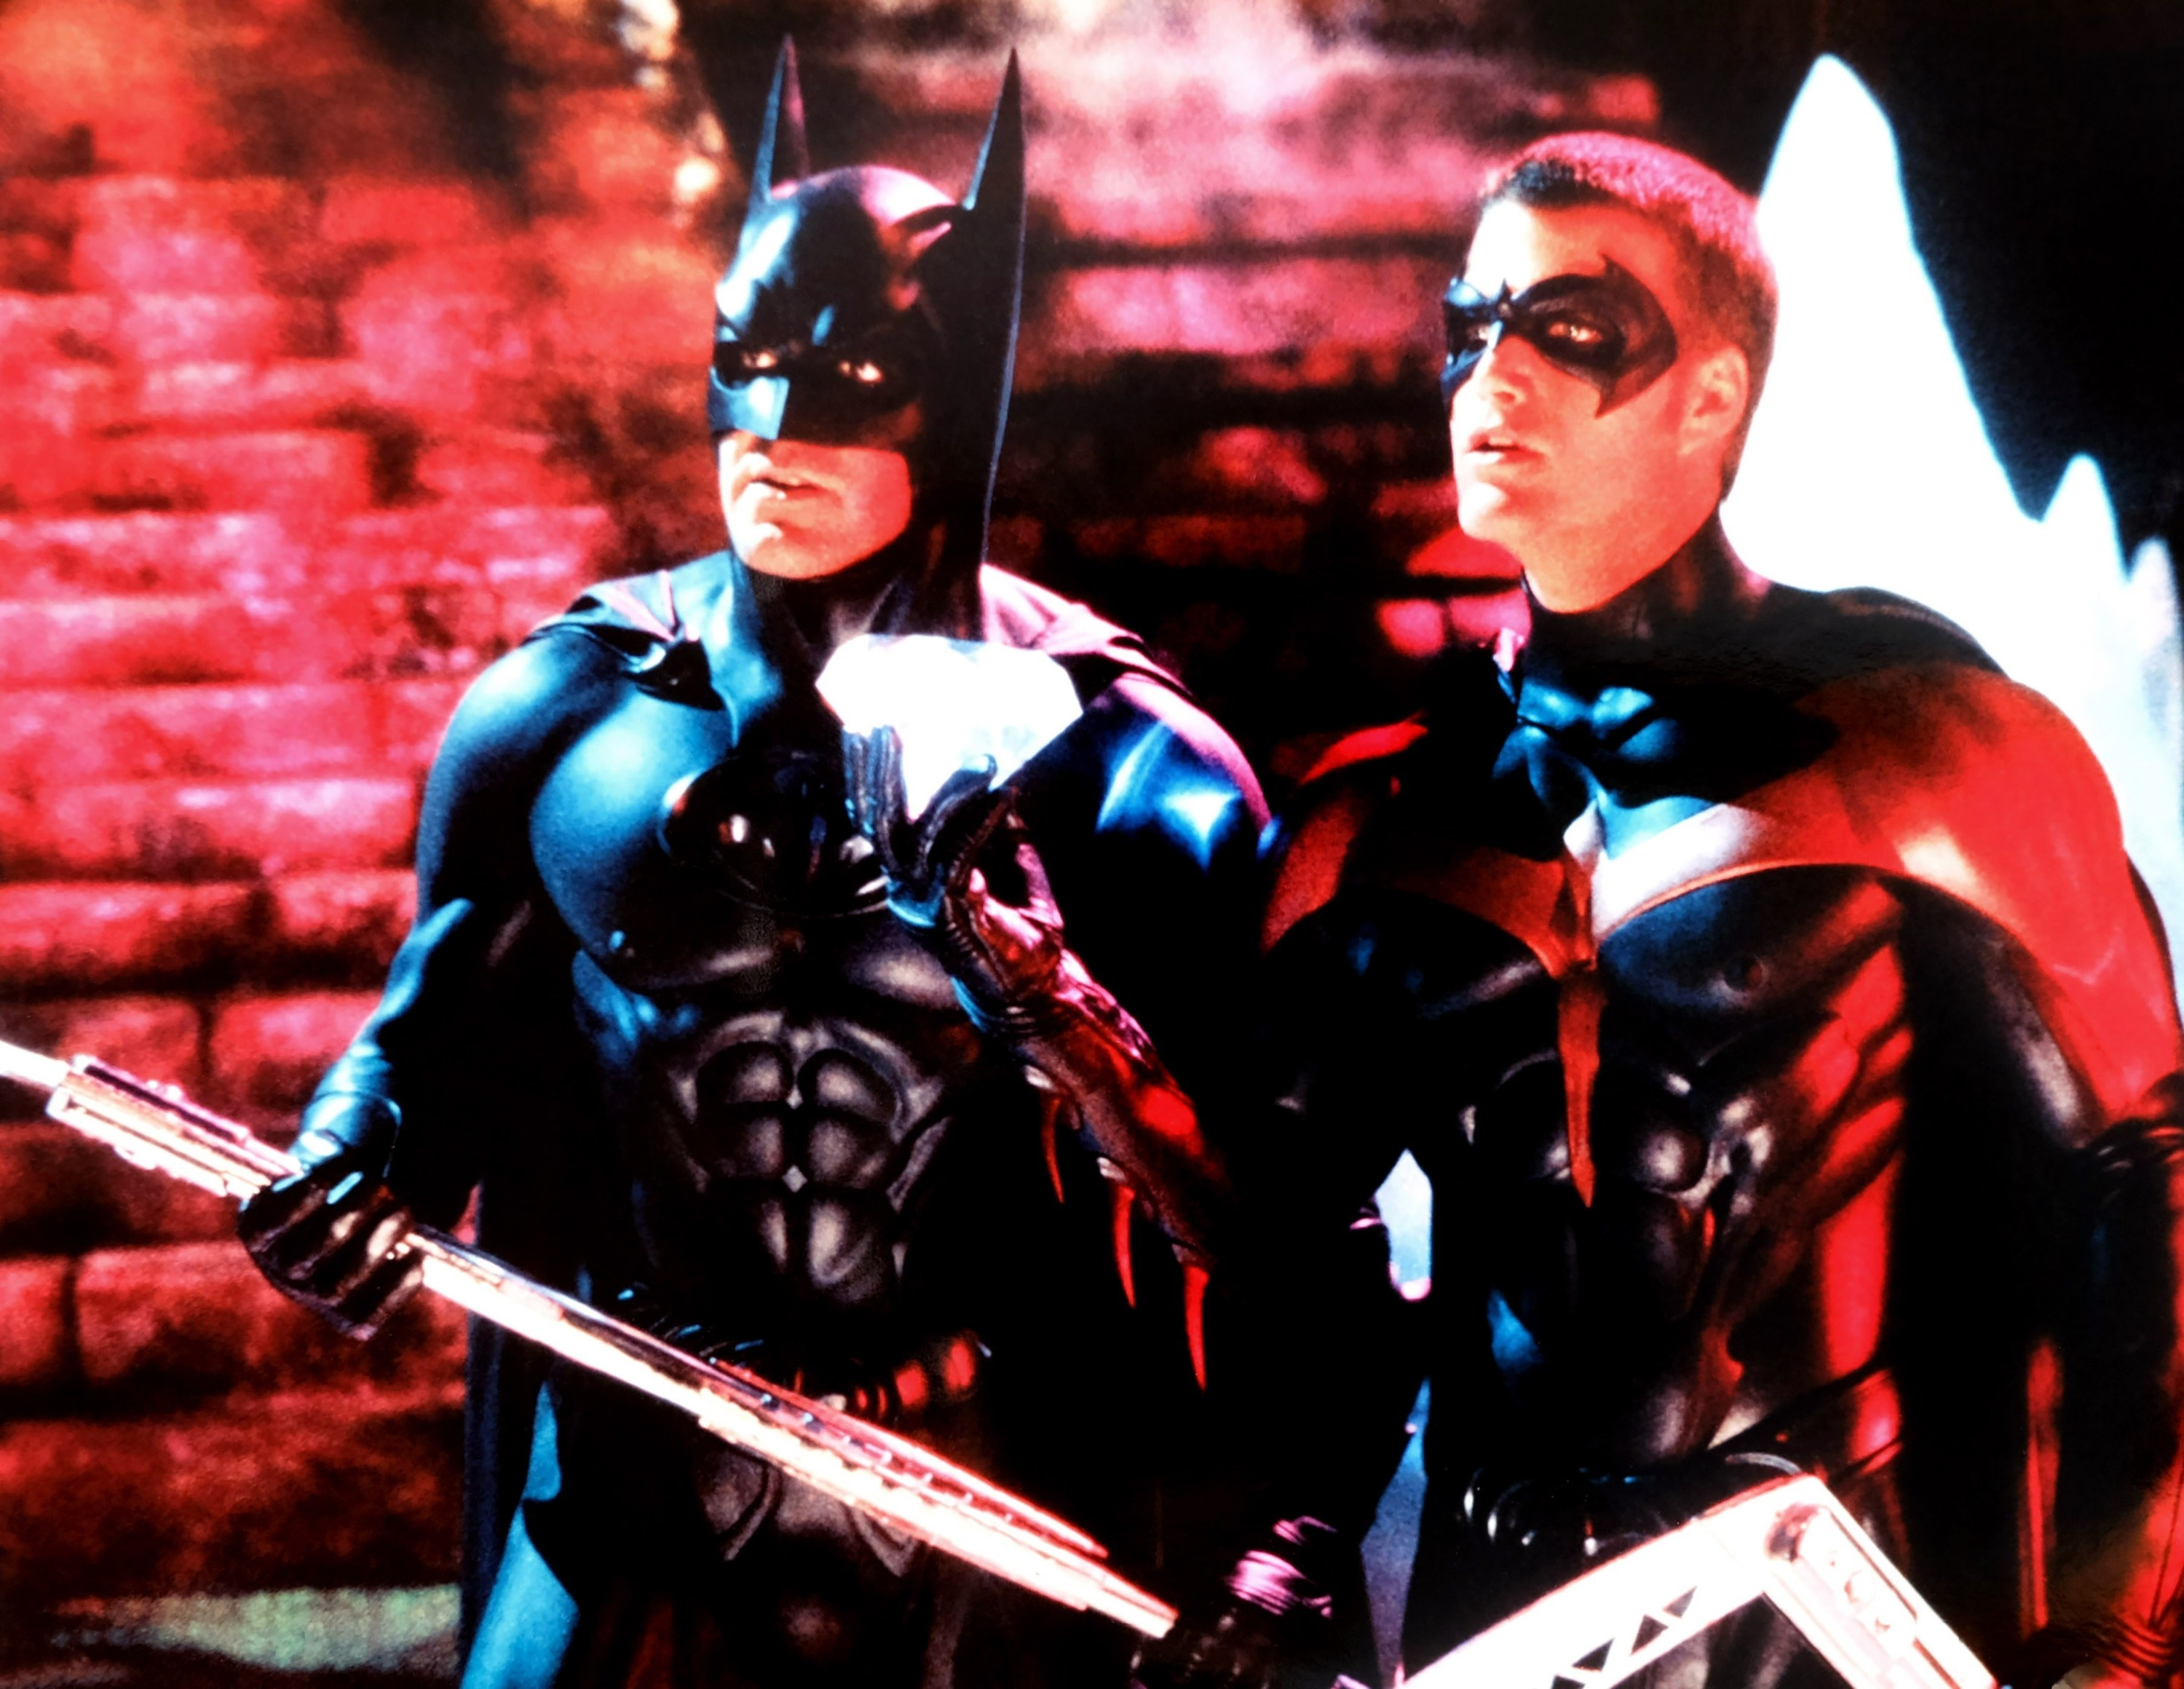 BATMAN & ROBIN, from left, George Clooney, Chris O'Donnell, 1997